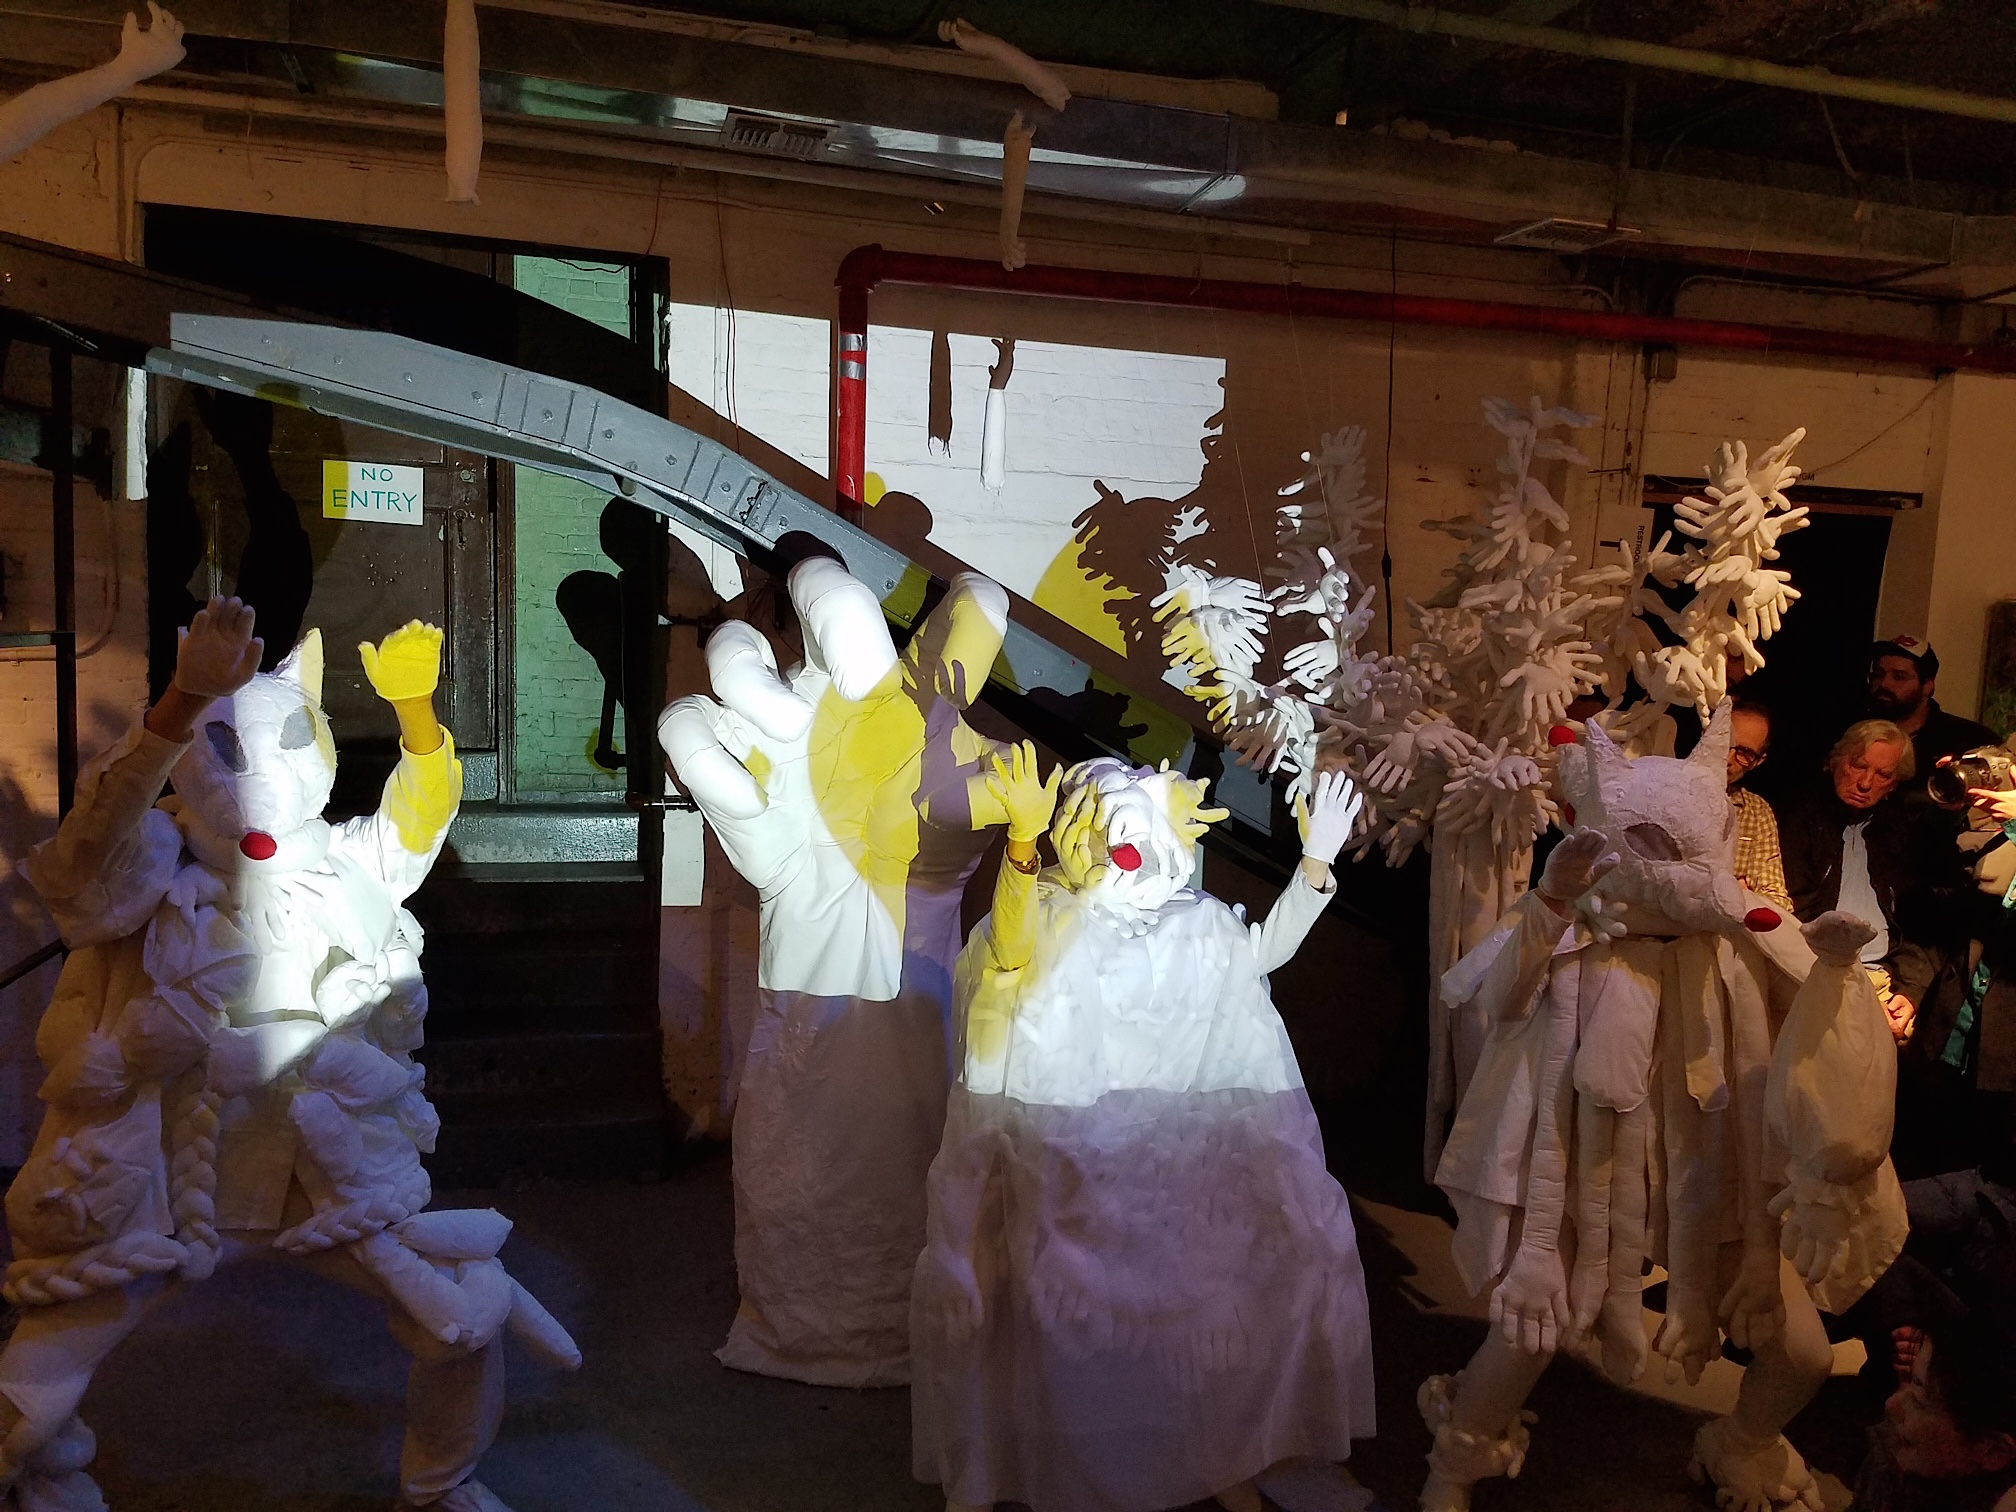 Parade -The Dreamland-, March 3rd, 2016, at Flux Factory